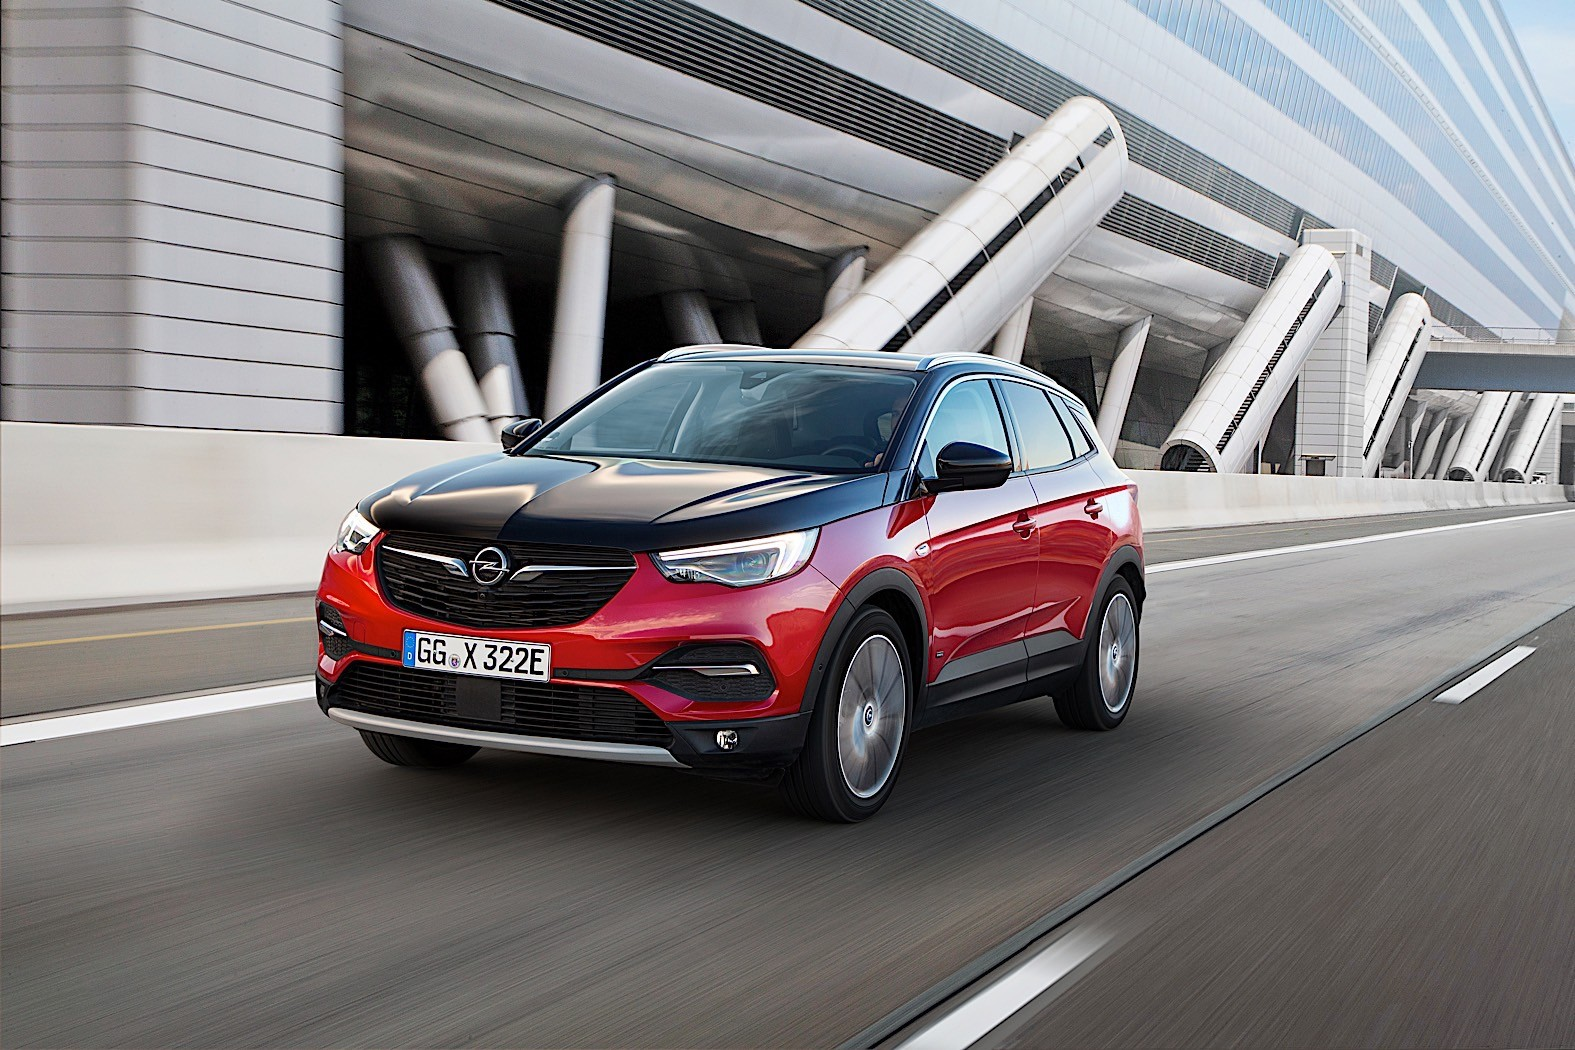 2020 opel grandland x hybrid4 revealed as carmaker s first phev offers 300 hp autoevolution